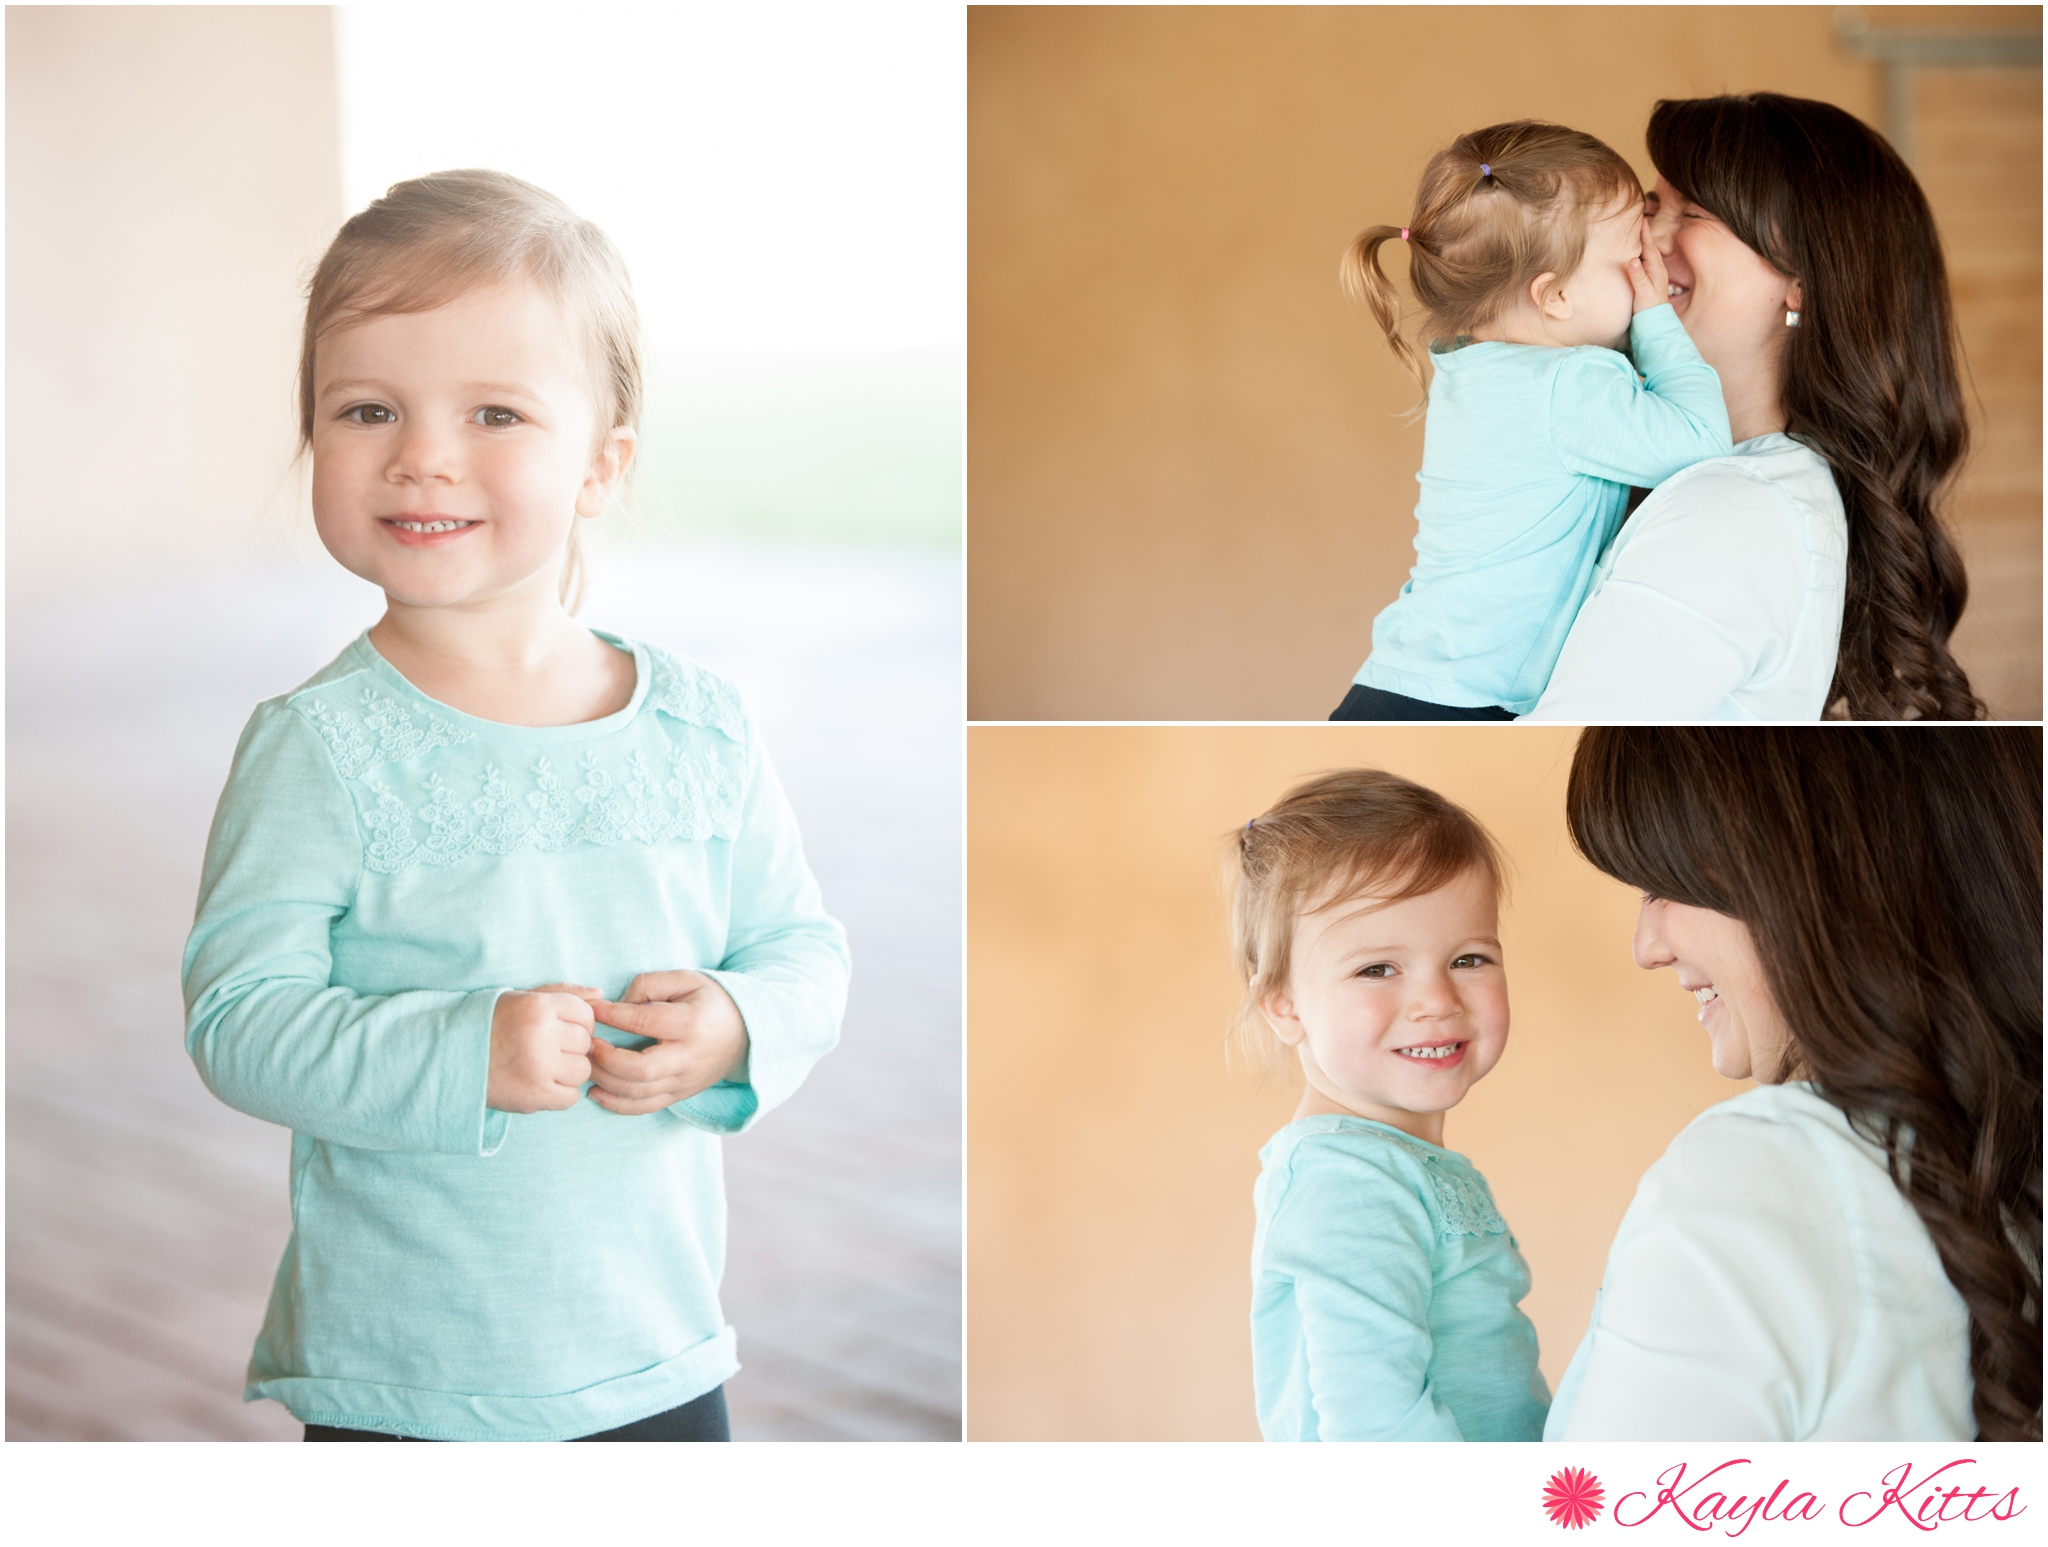 kayla kitts photography - baca family 2014-005.jpg